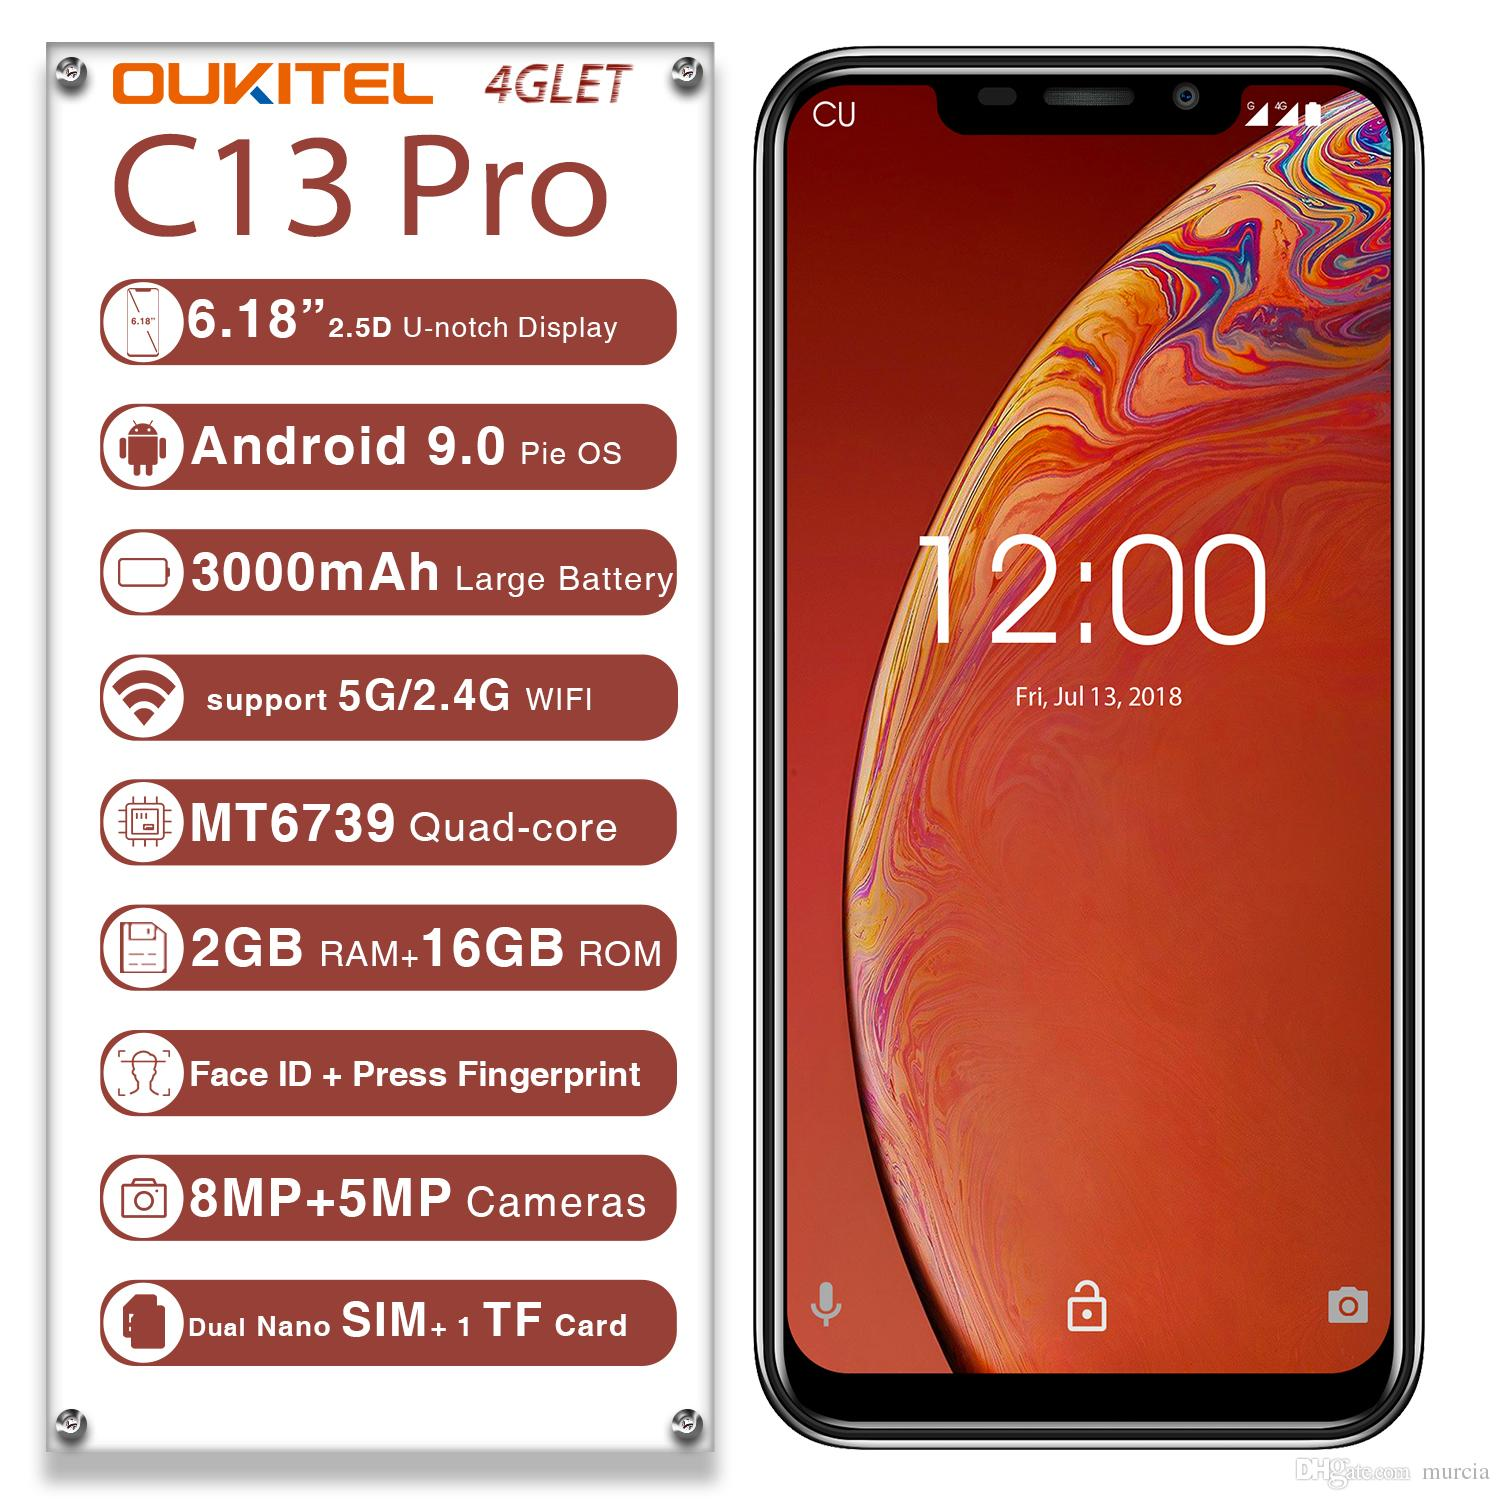 OUKITEL C13 Pro 5G 2 4G WIFI Android 9 0 Mobile Phone 6 18 19:9 2GB 16GB  MT6739 4G LTE Face Unlock Fingerprint ID Smartphone